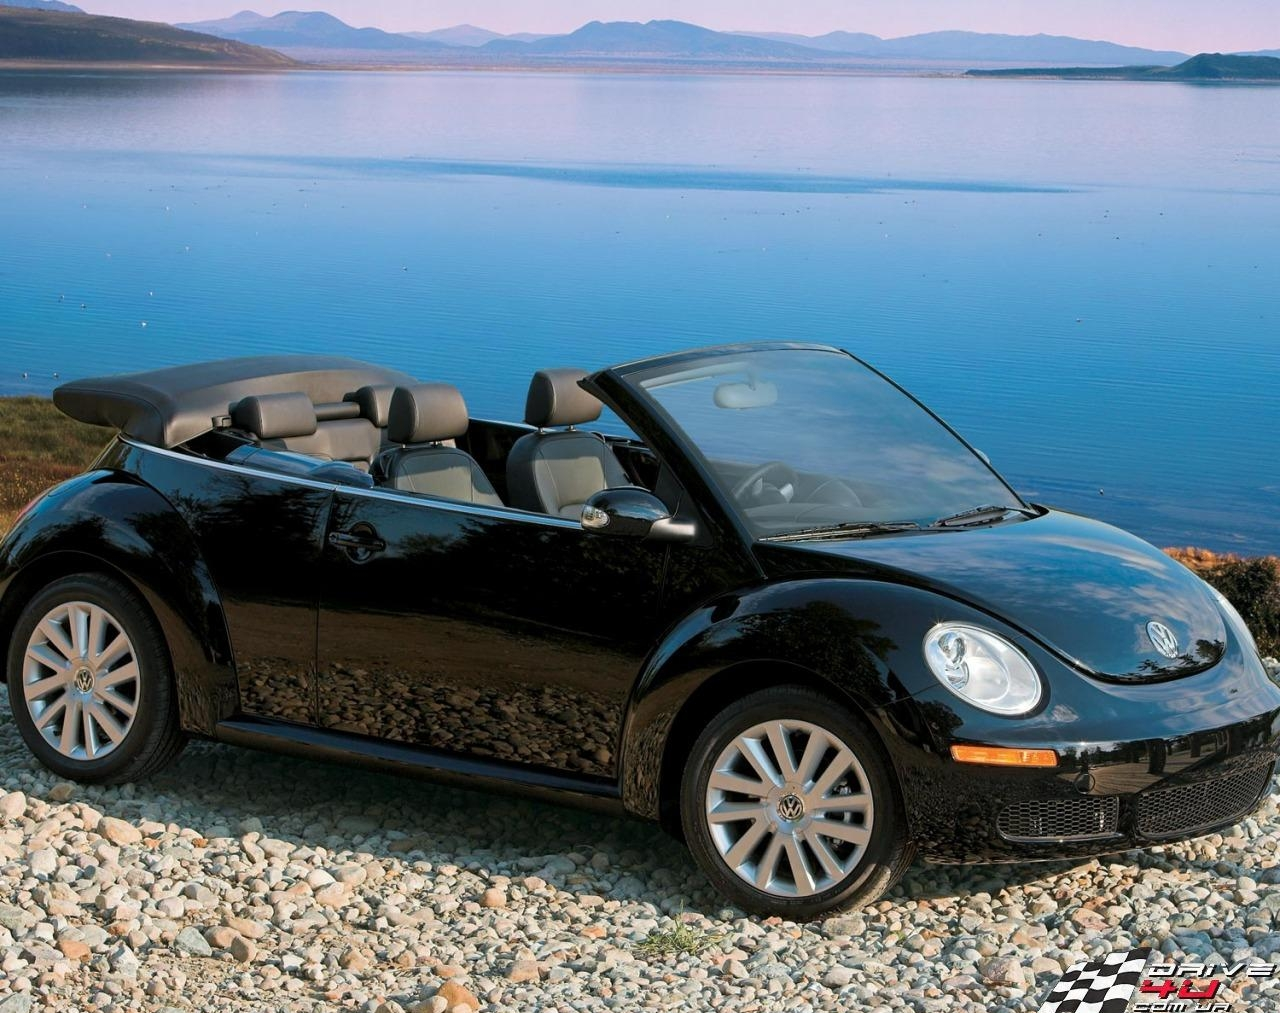 2.71. Кабриолет VW New Beetle Cabrio